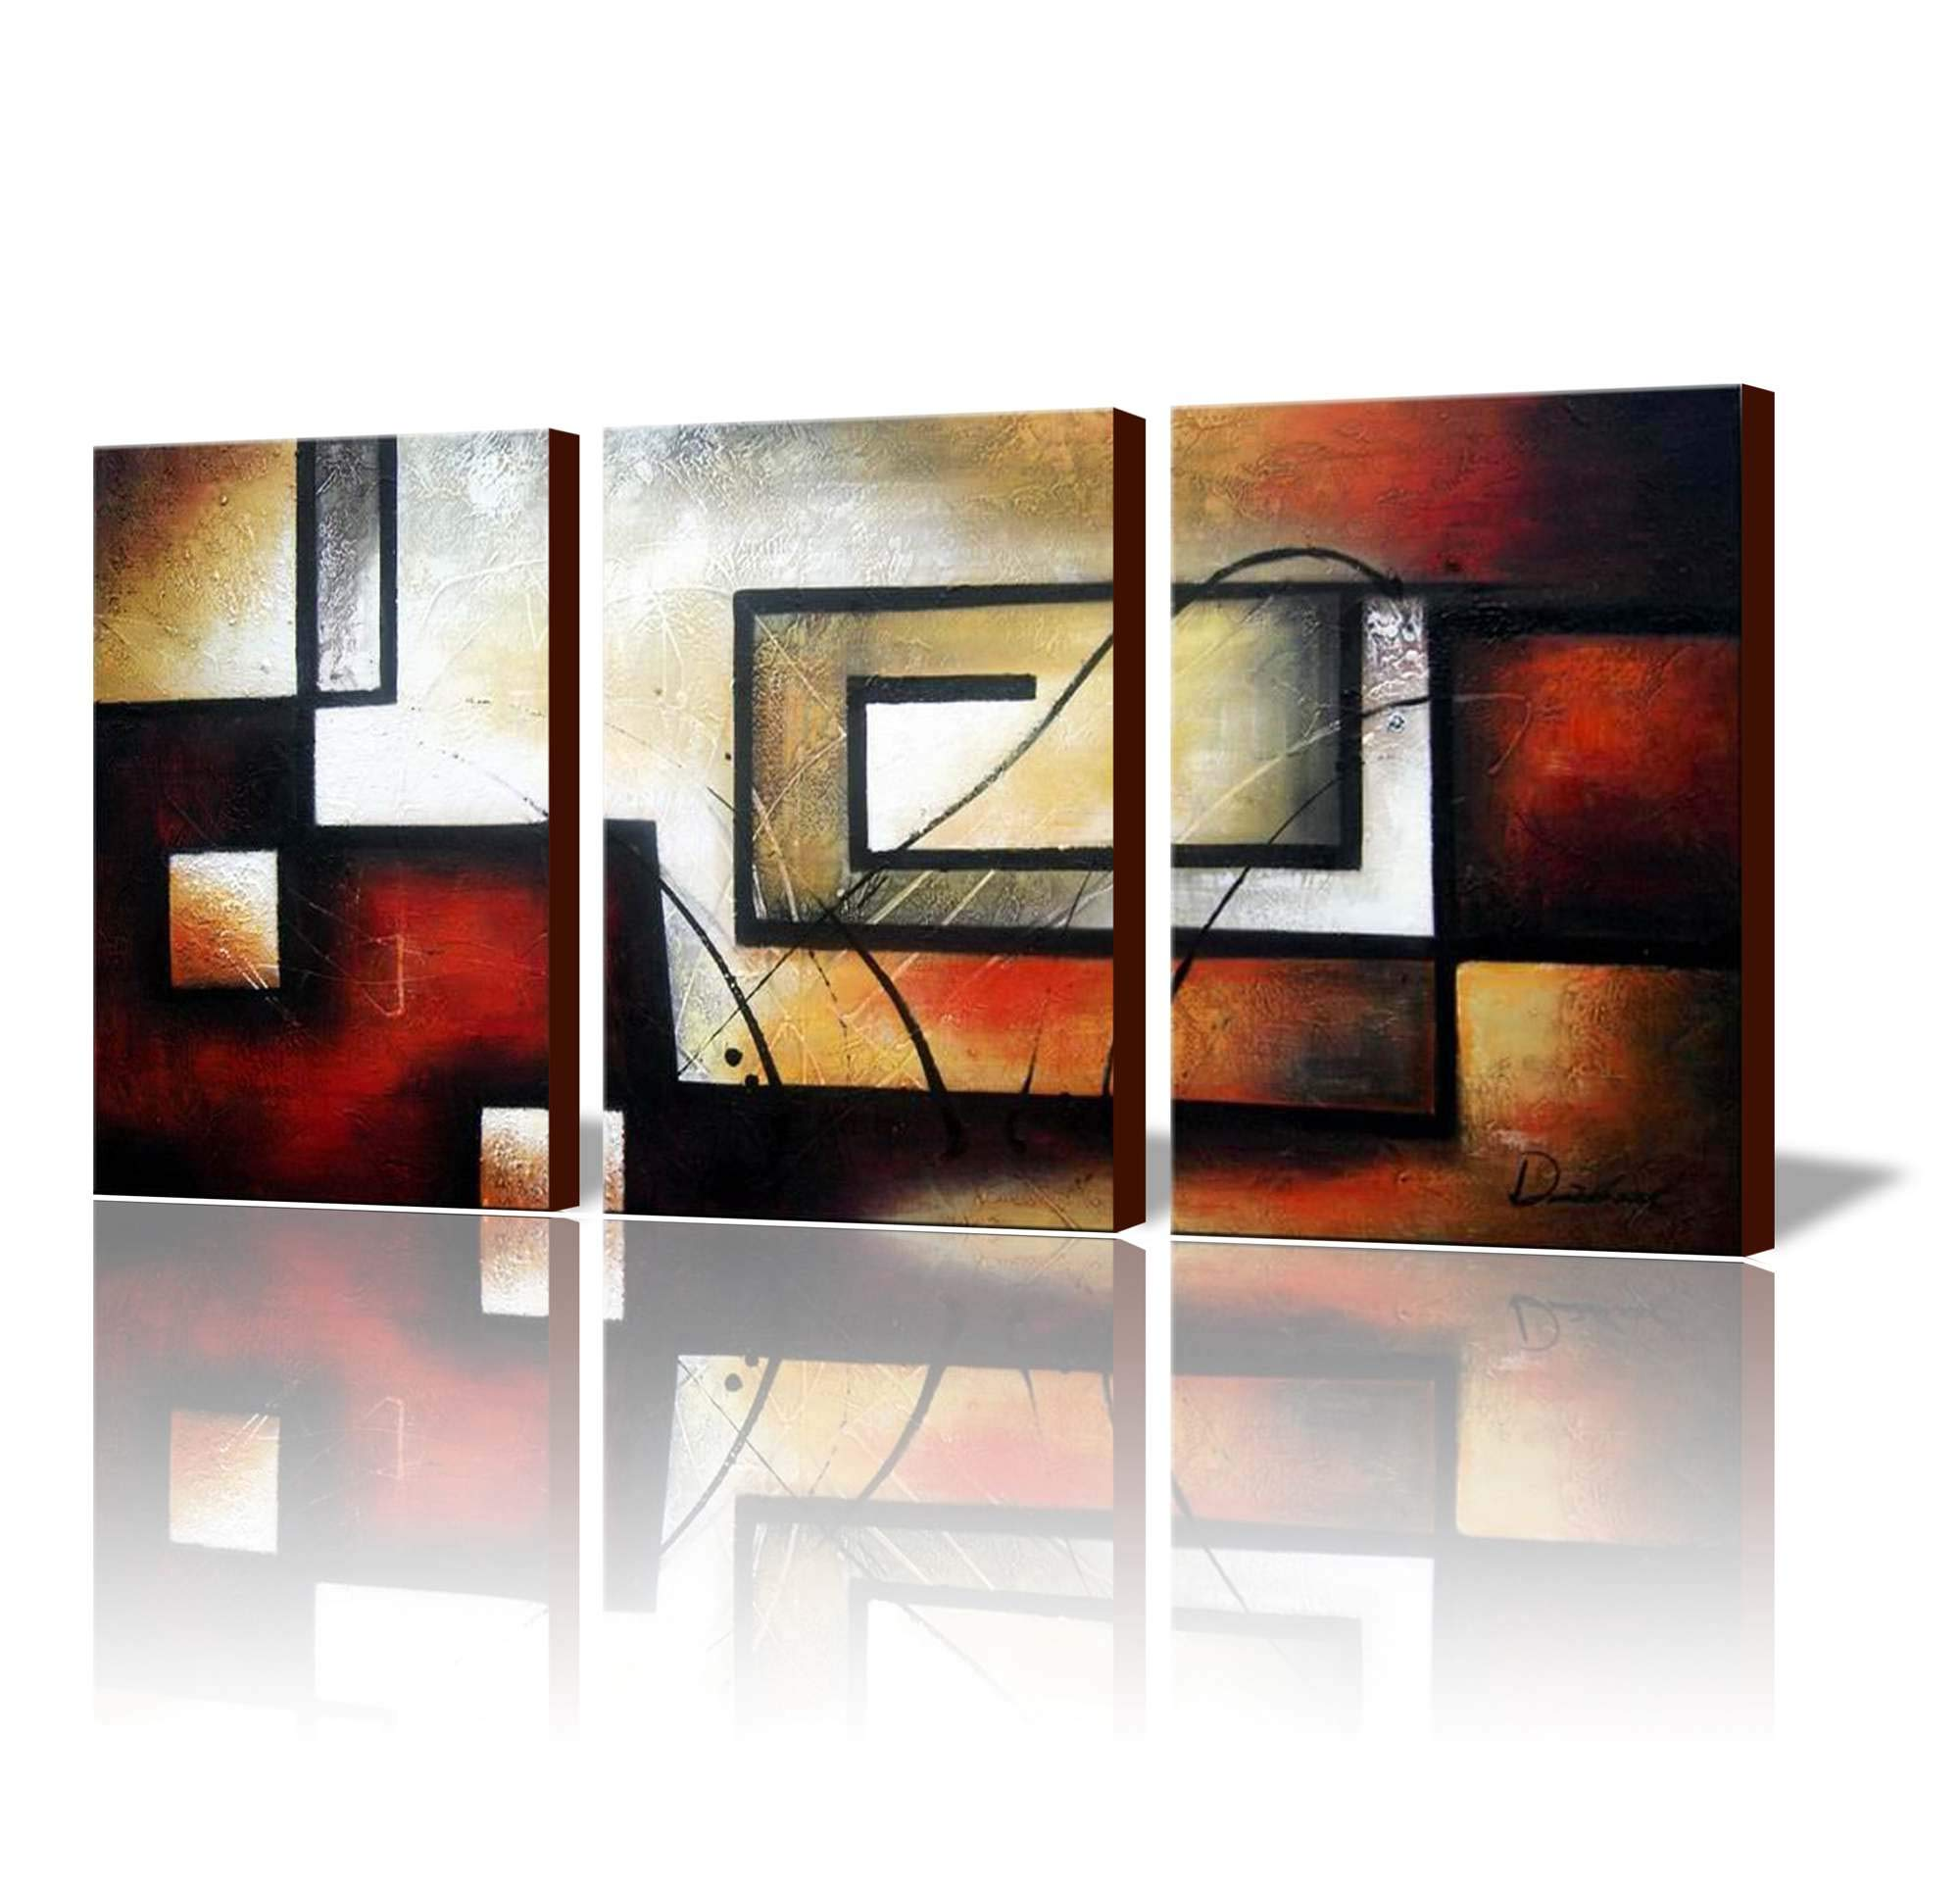 ARTLAND Modern 100% Hand Painted Abstract Oil Painting on Canvas The Maze of Memory 3-Piece Gallery-Wrapped Framed Wall Art Ready to Hang for Living Room for Wall Decor Home Decoration 24x48inches